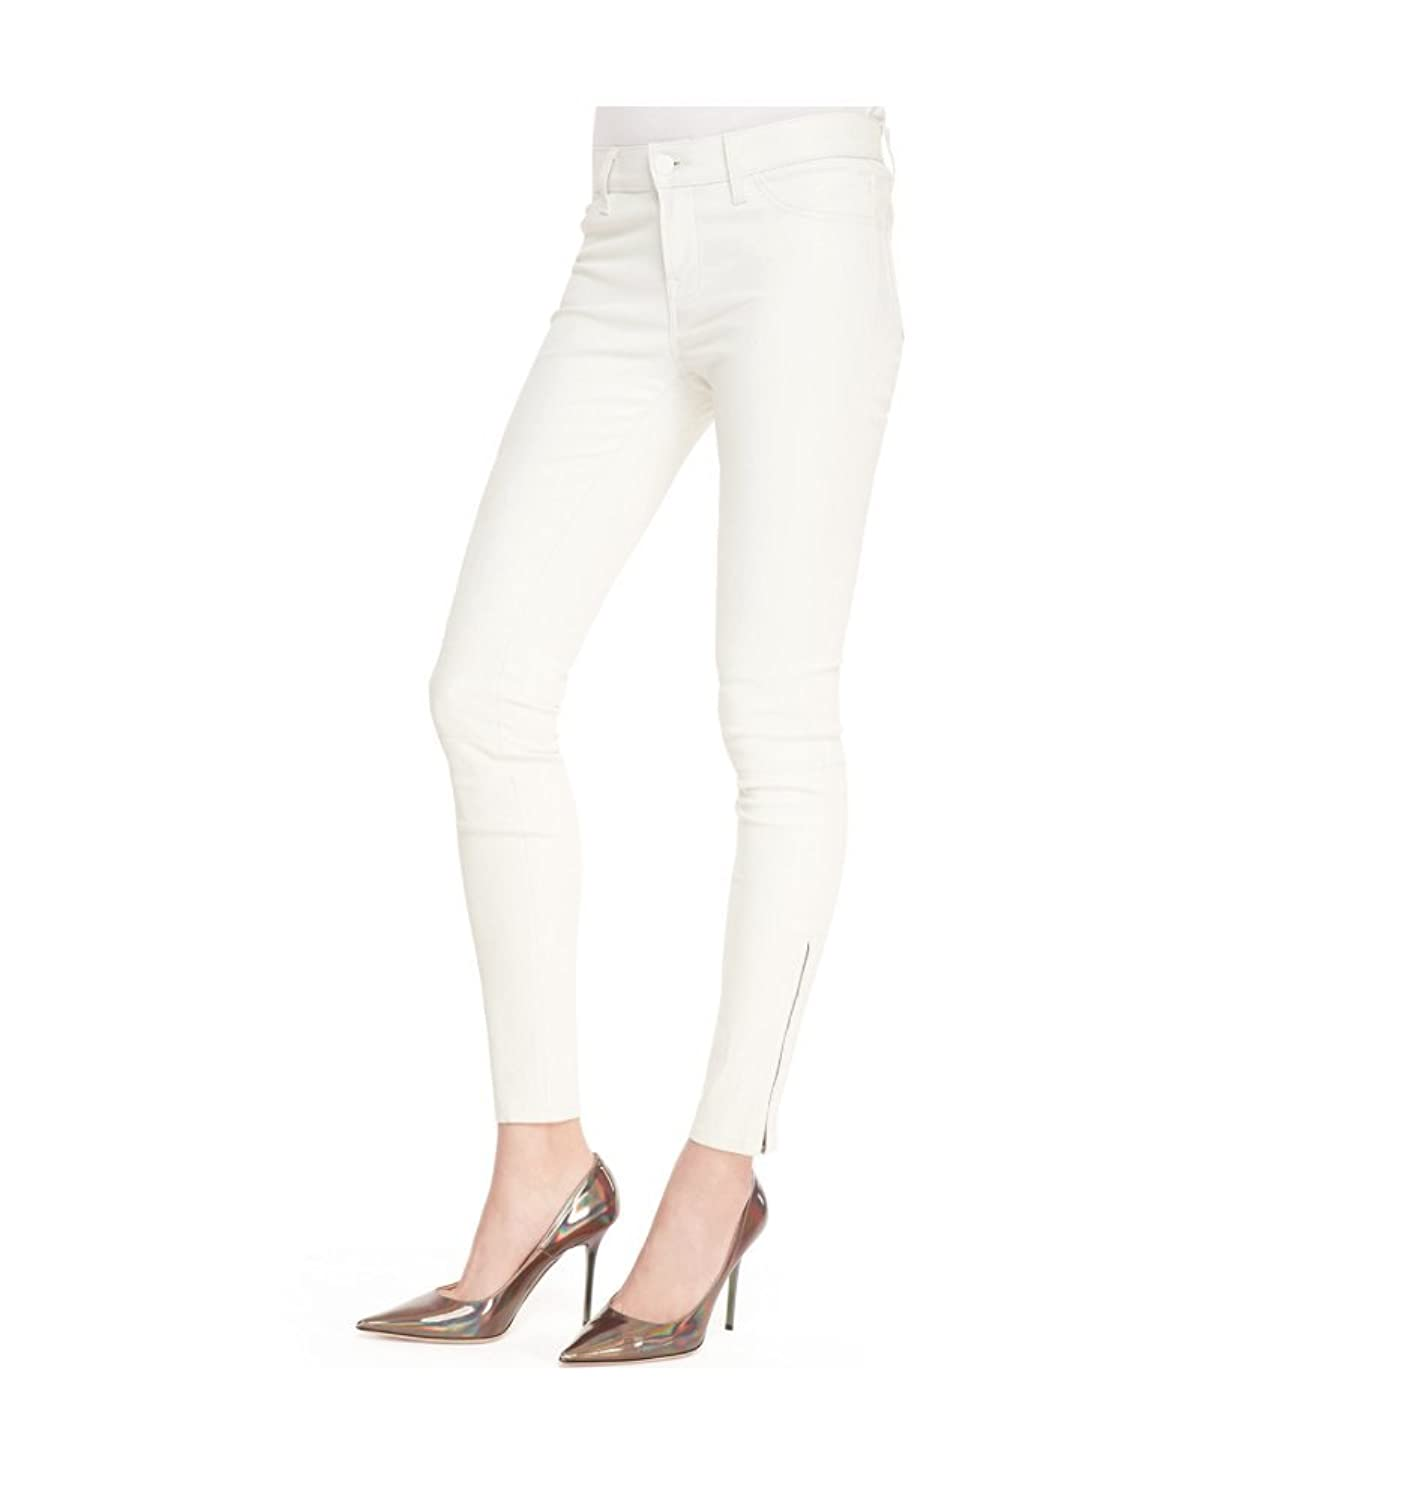 White Ankle Zip Leather Skinny Jeans (27)